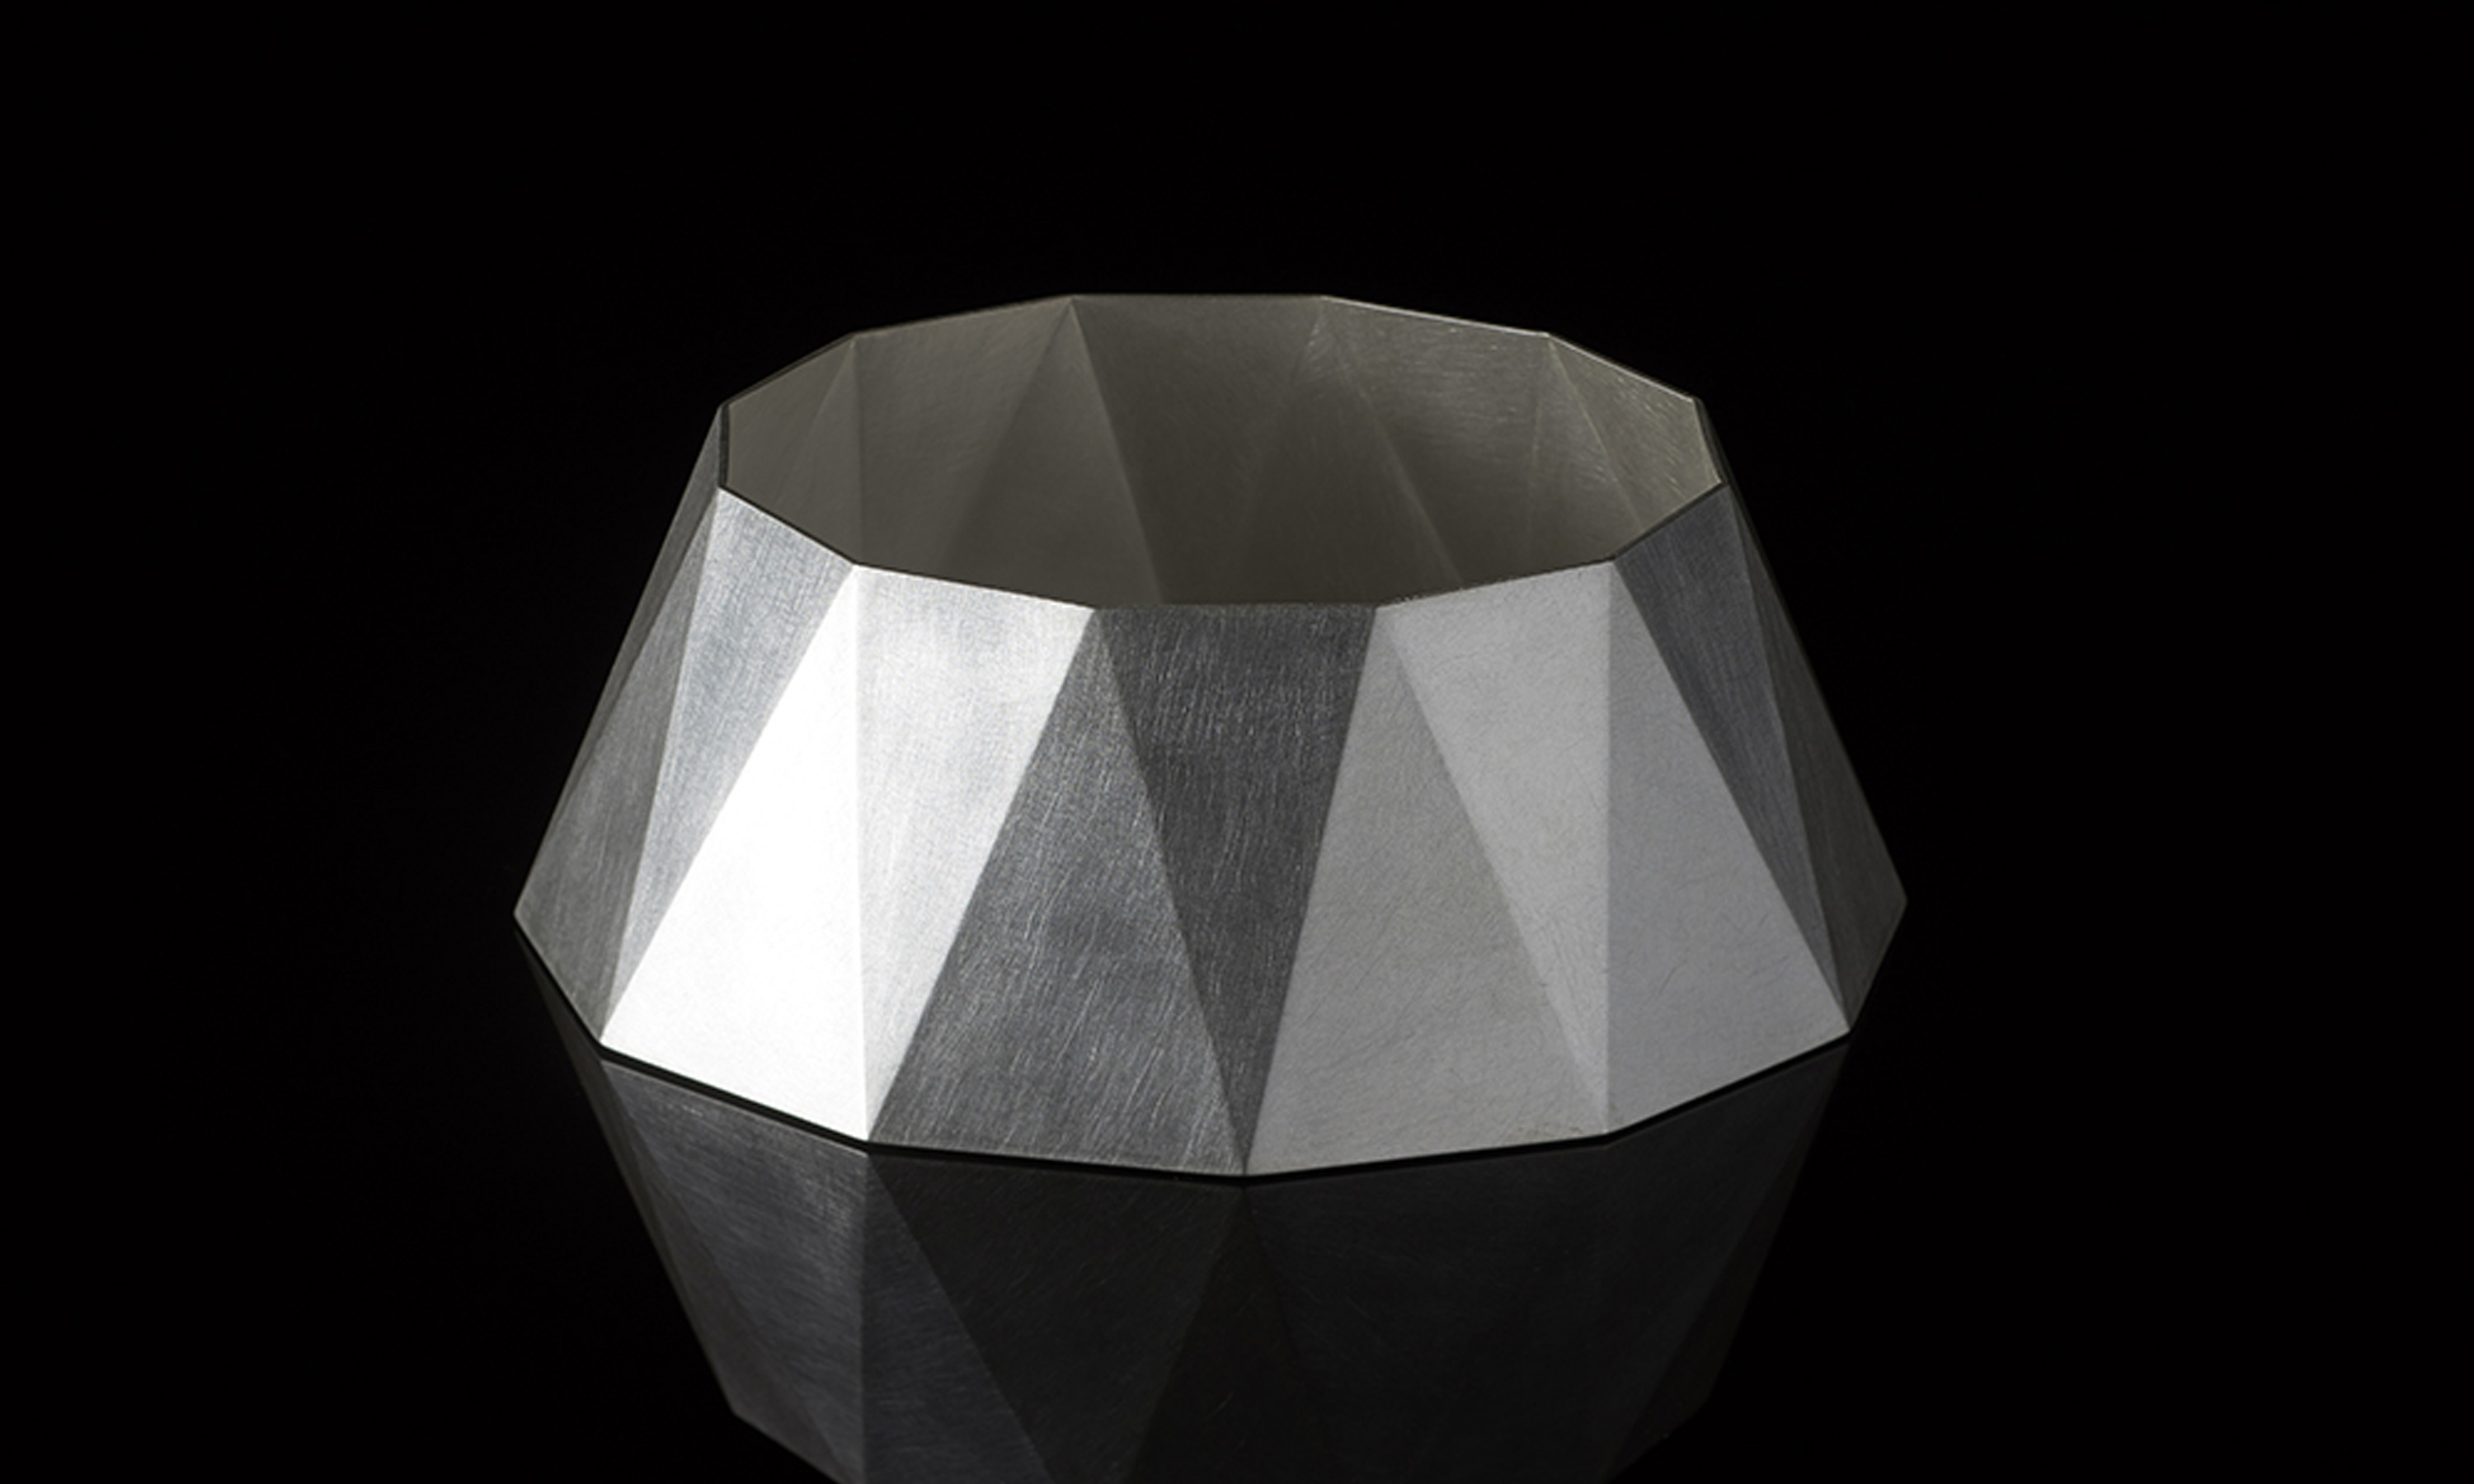 mas-gallery-12-24-faceted-vessel